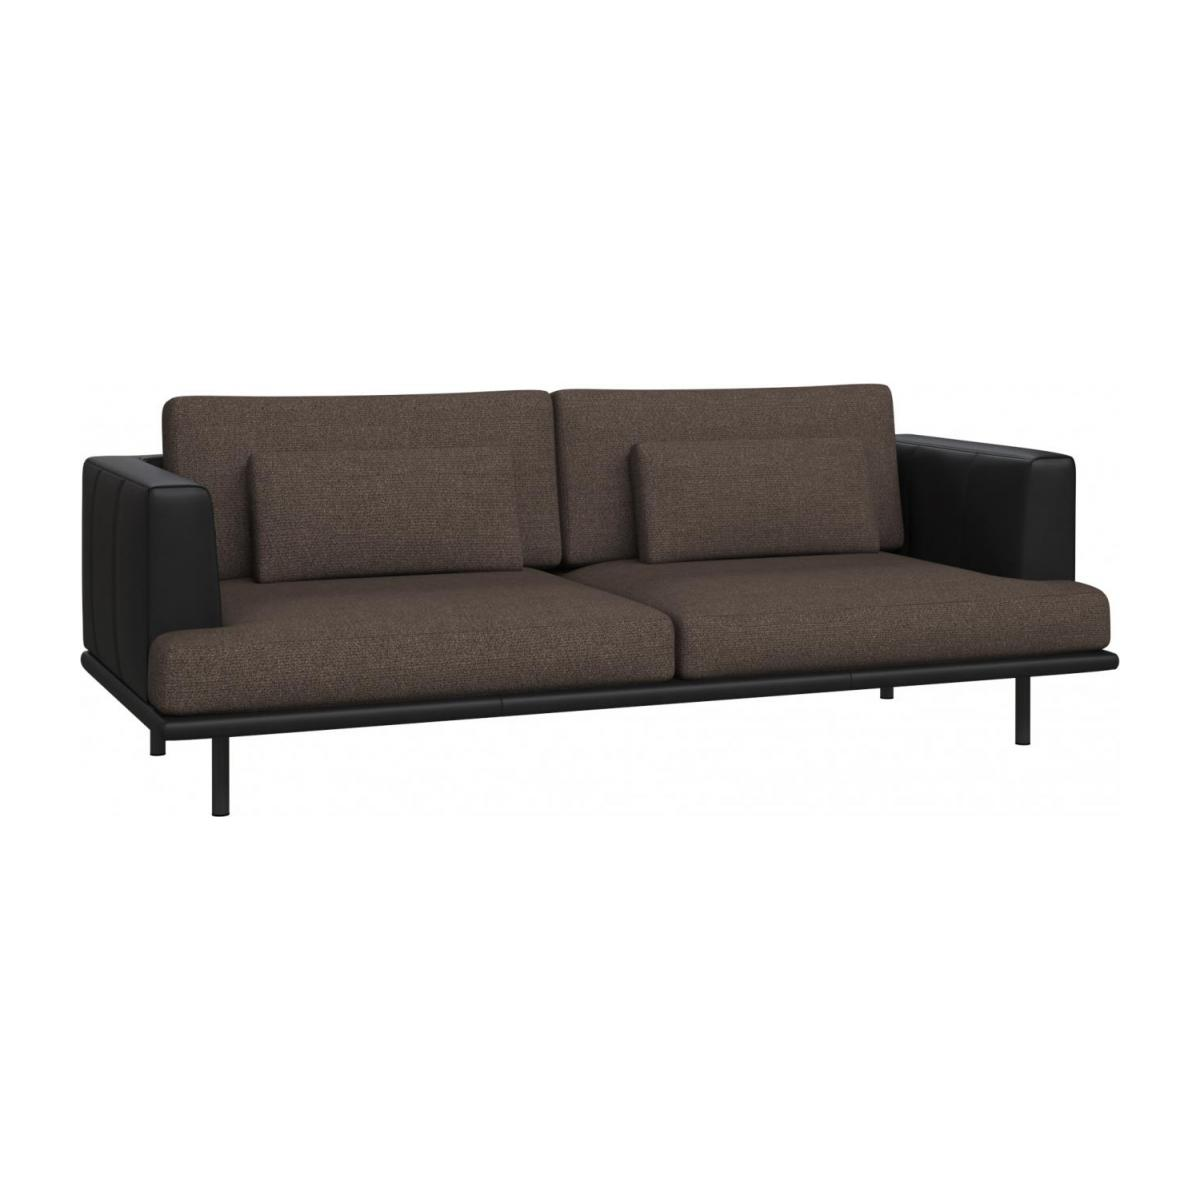 3 seater sofa black leather pink and grey baci in lecce fabric muscat with base armrests n